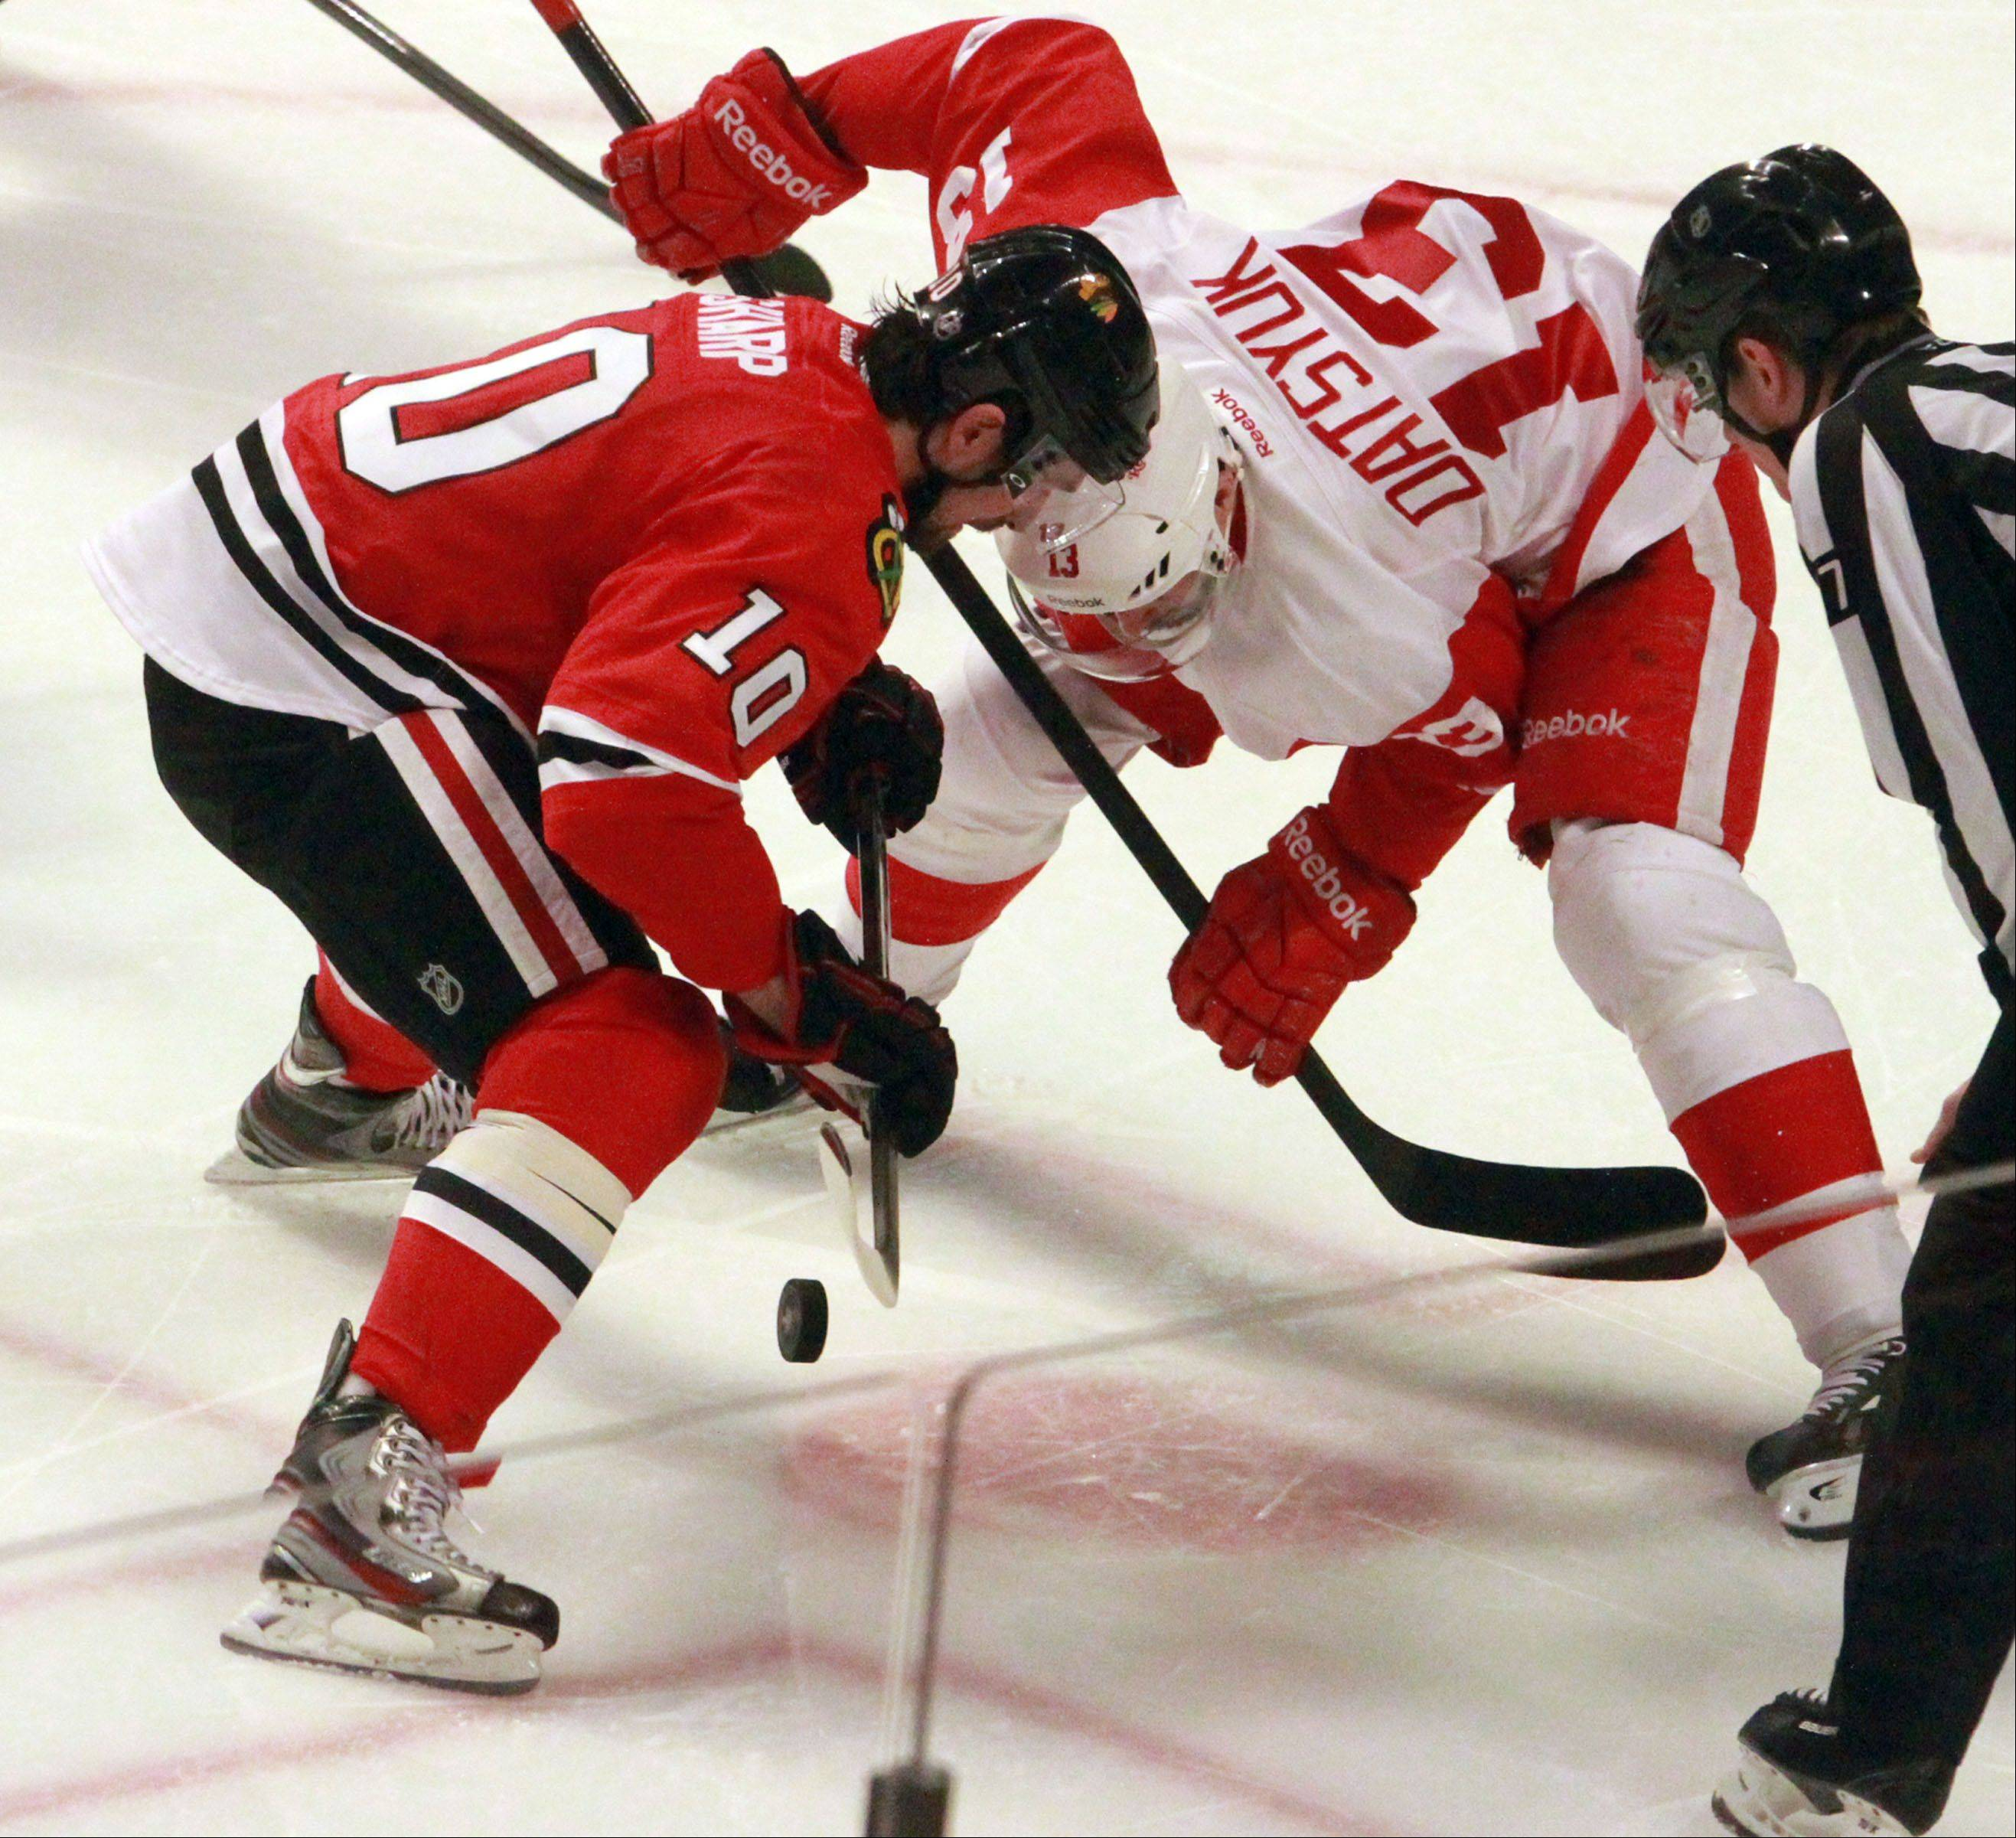 Center Patrick Sharp faces off with Detroit Red Wings center Pavel Datsyuk in third period.